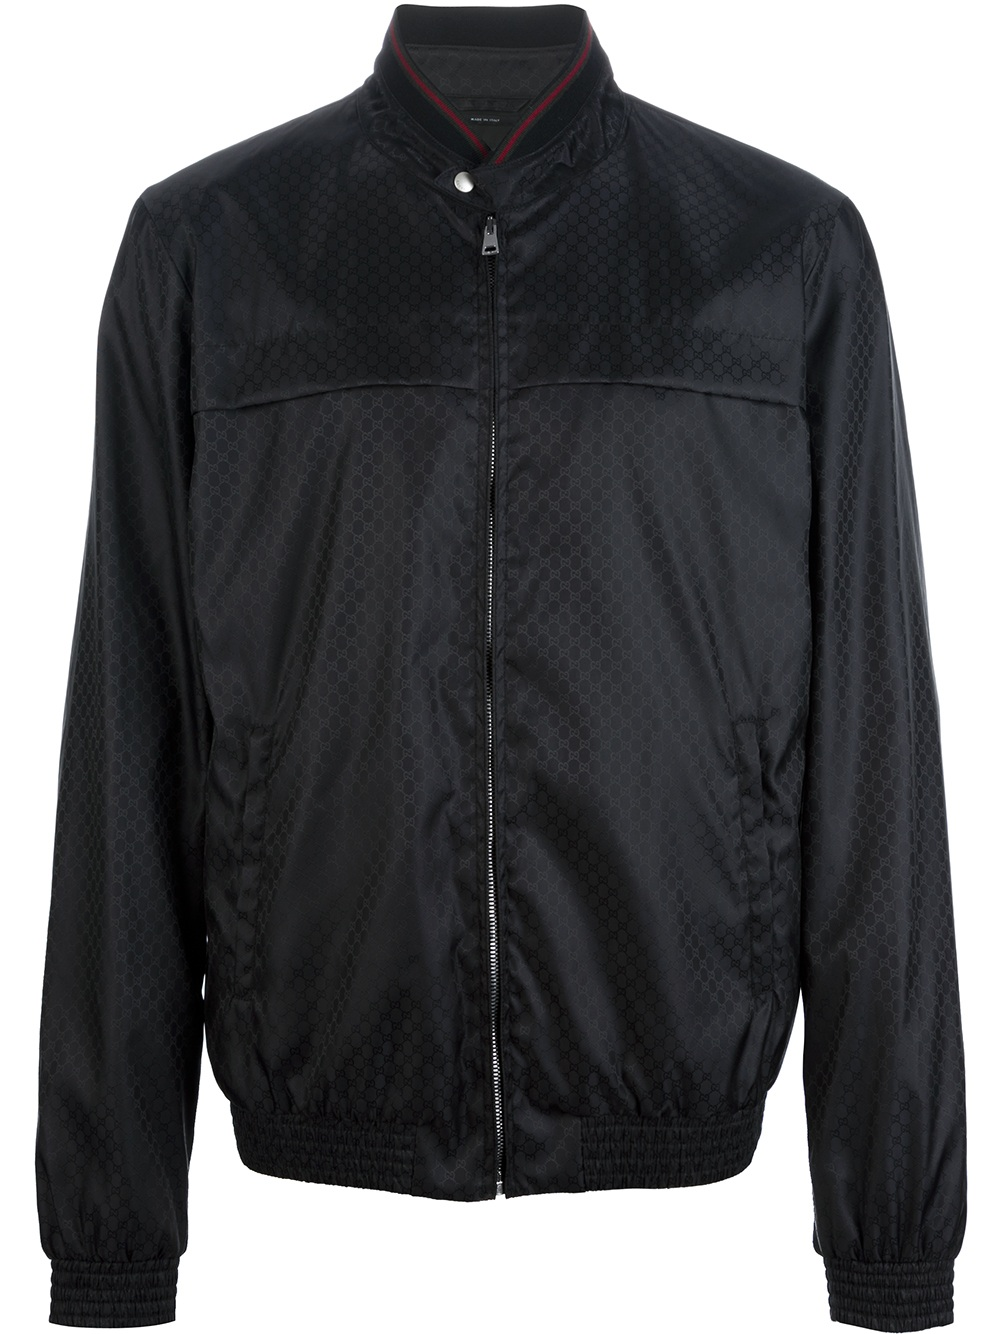 Gucci Zipped Jacket In Black For Men Lyst